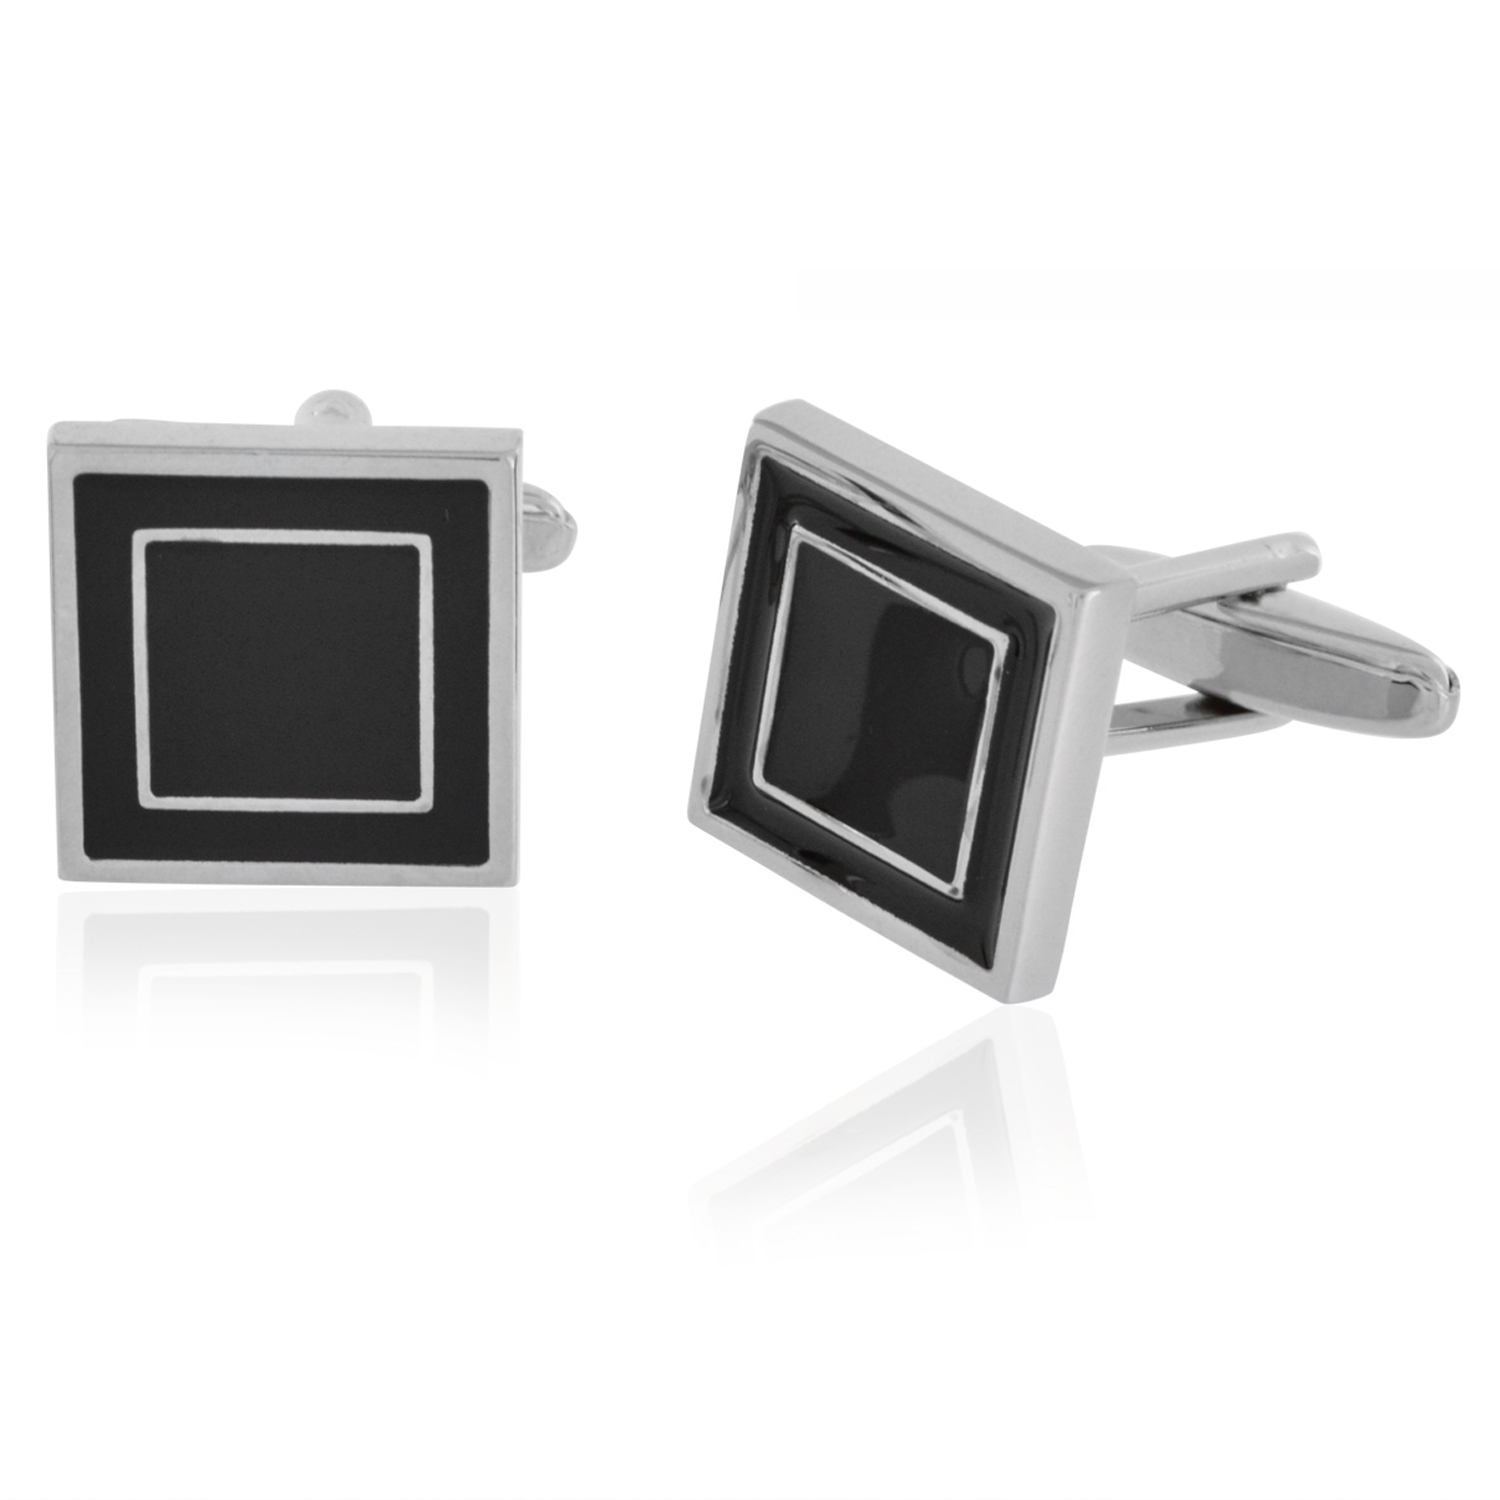 Budget Cufflinks Black and Silver Formal Set Cuff Links